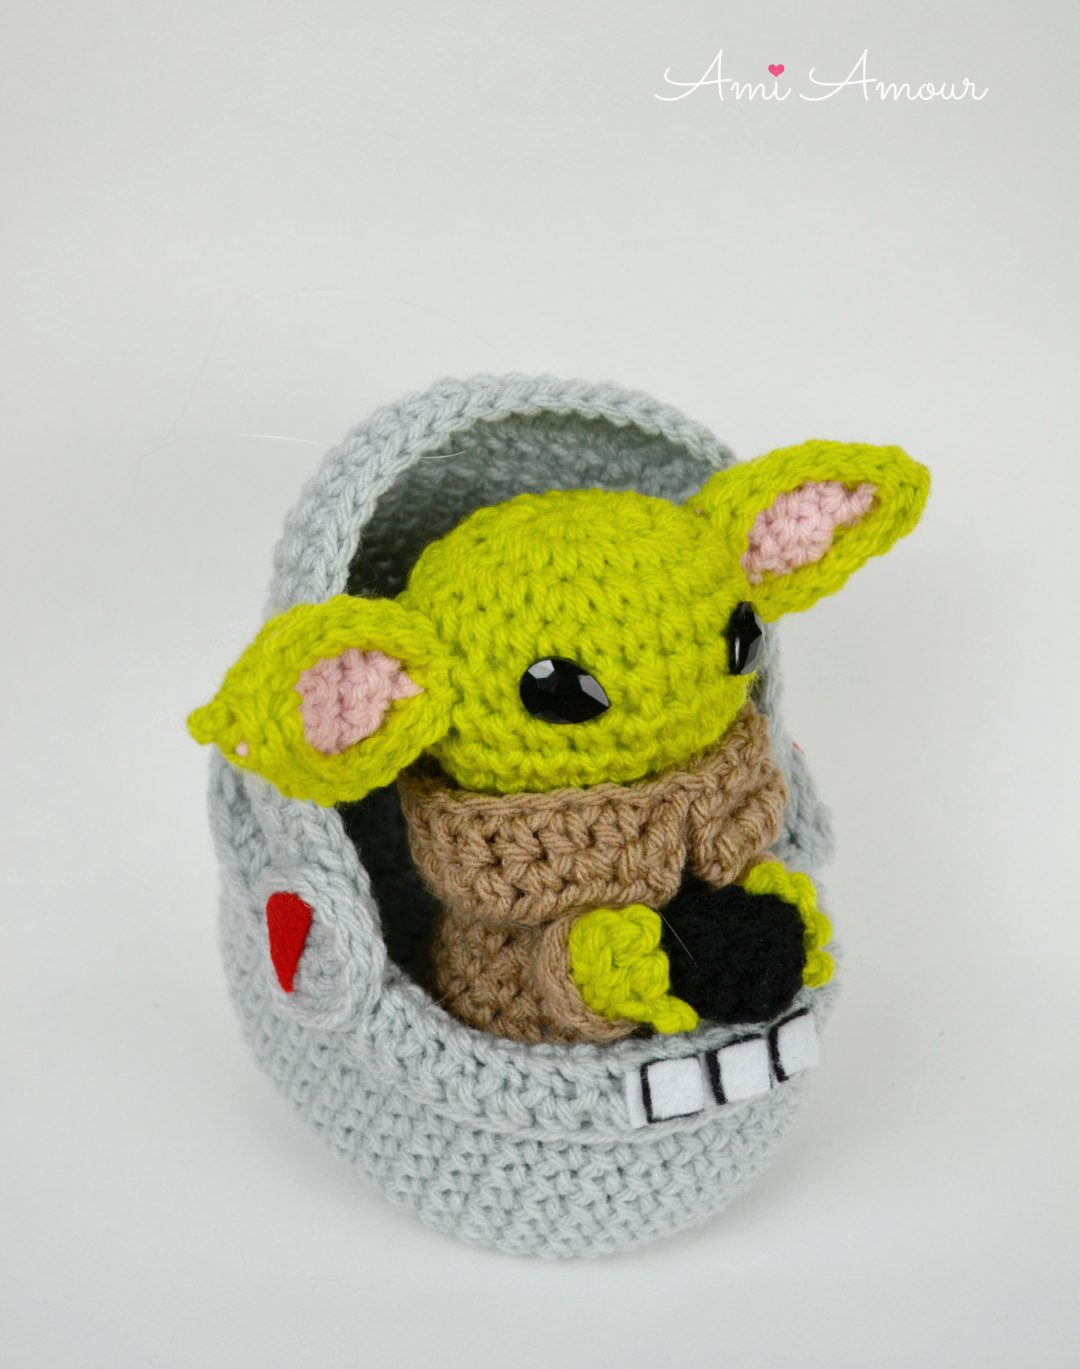 Crochet Yoda Sipping Soup in Pod